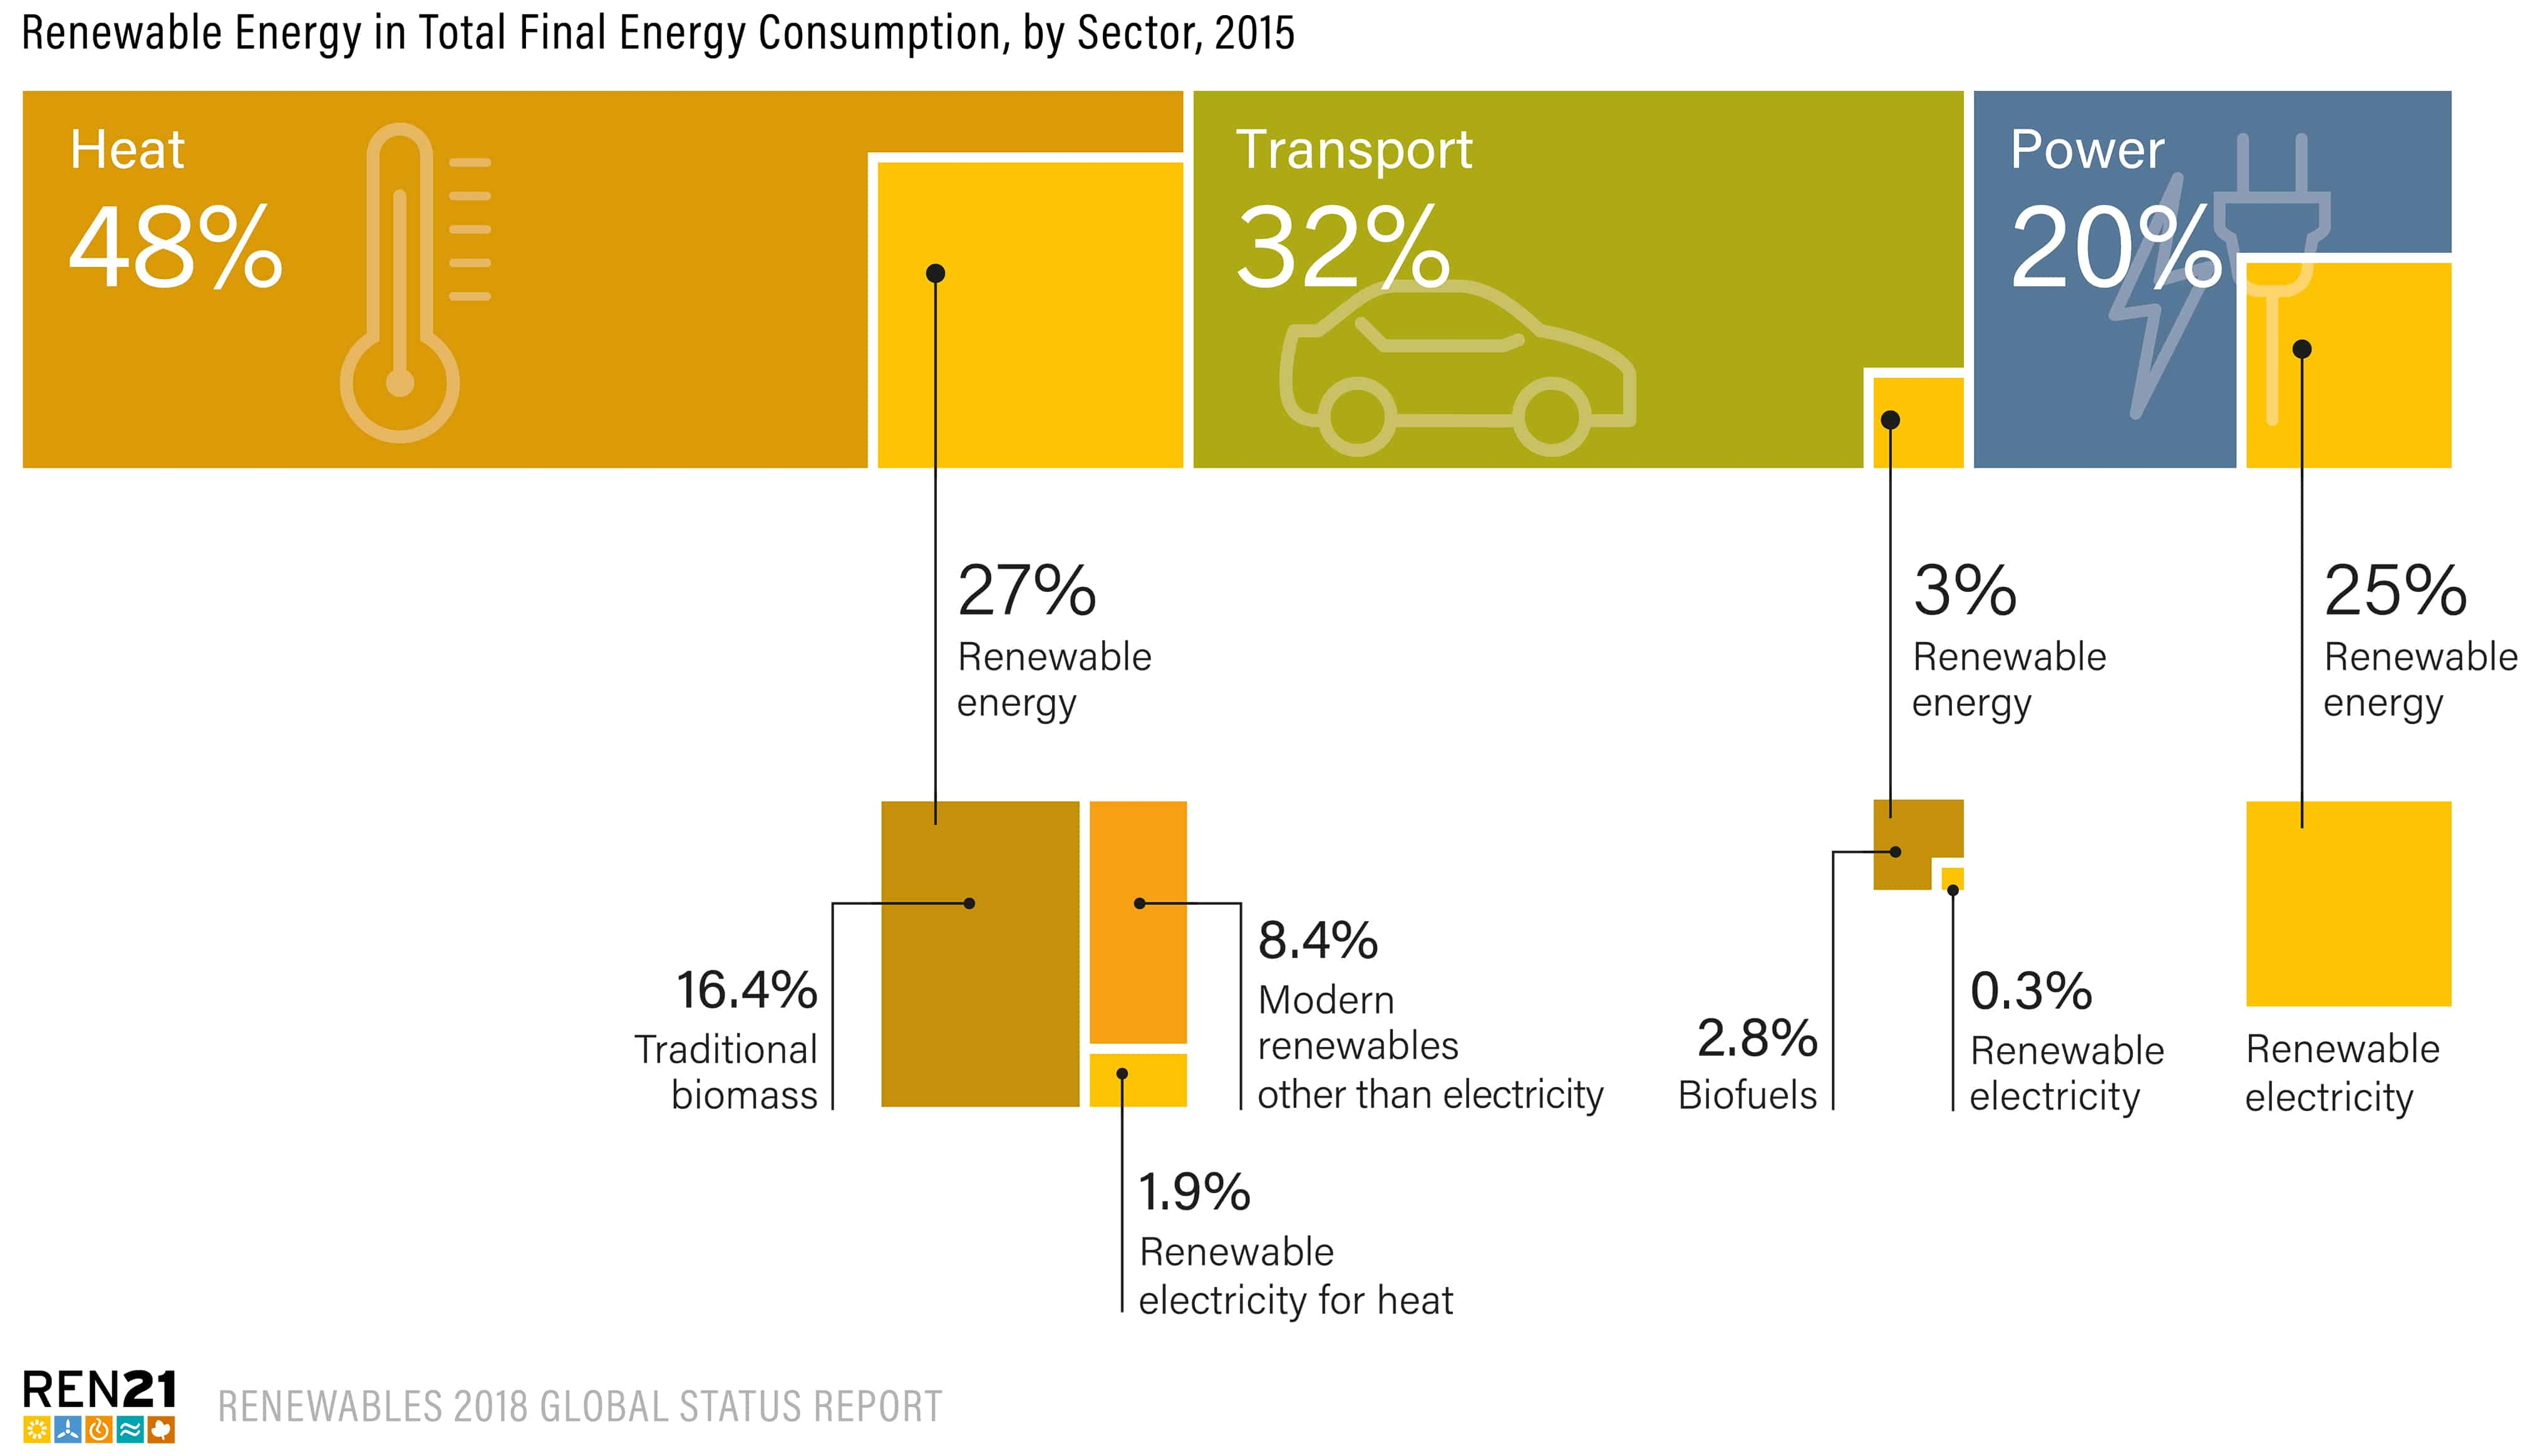 Renewable Energy in Total Final Energy Consumption by Sector 2015